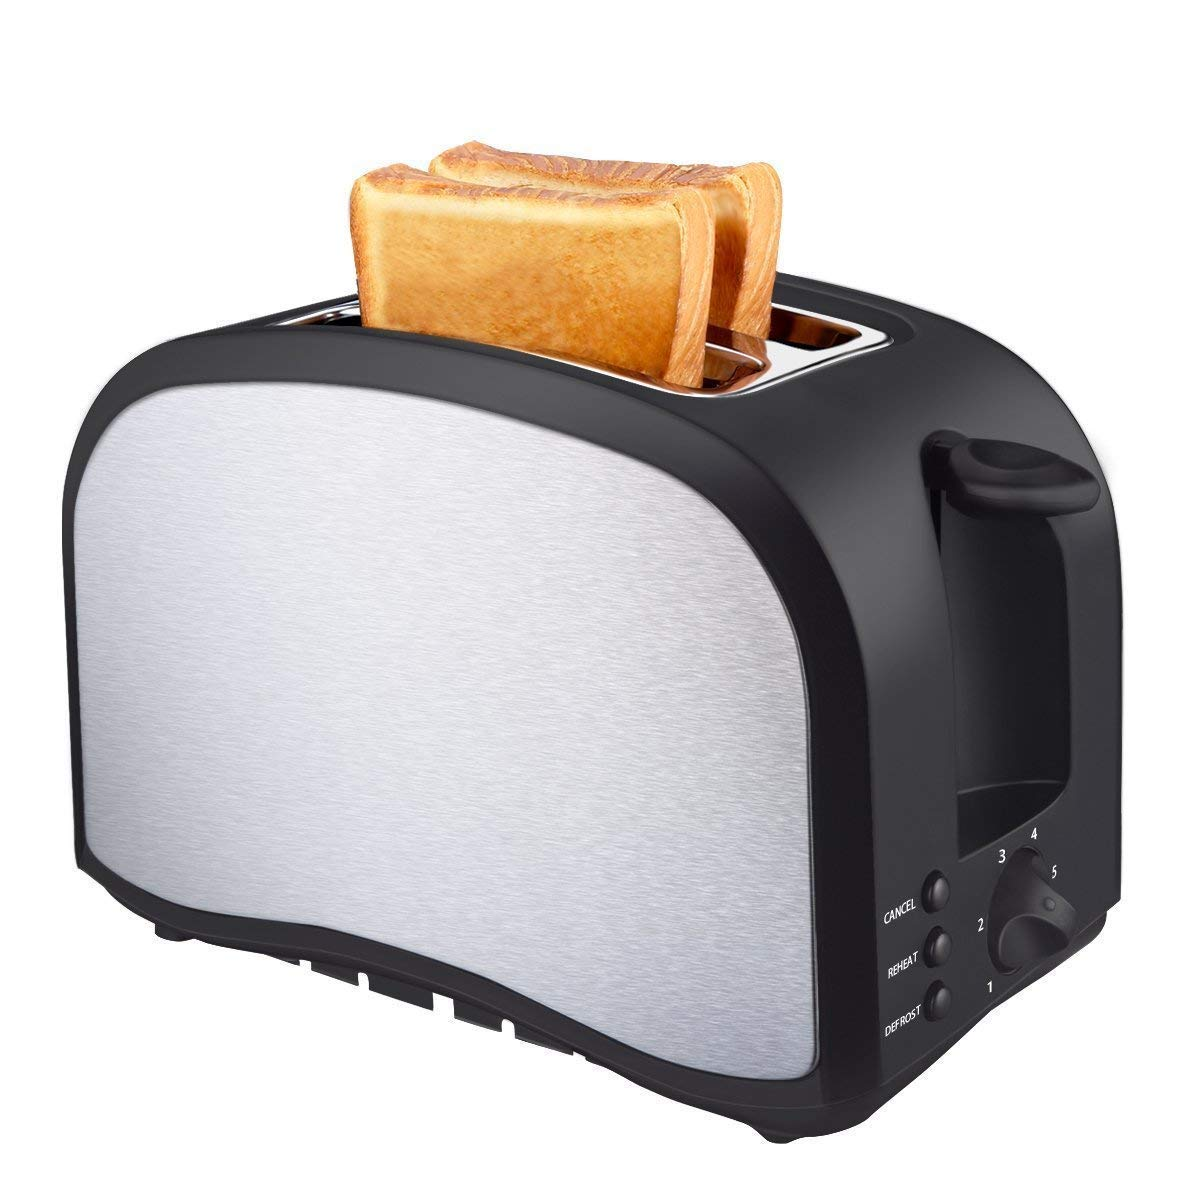 Toaster 2 Slice, Compact Brushed Stainless Steel Breakfast Bread Two Slice Toasters Quickly Toasts Defrost Reheat Cancel Button Removable Crumb Tray By KEEMO